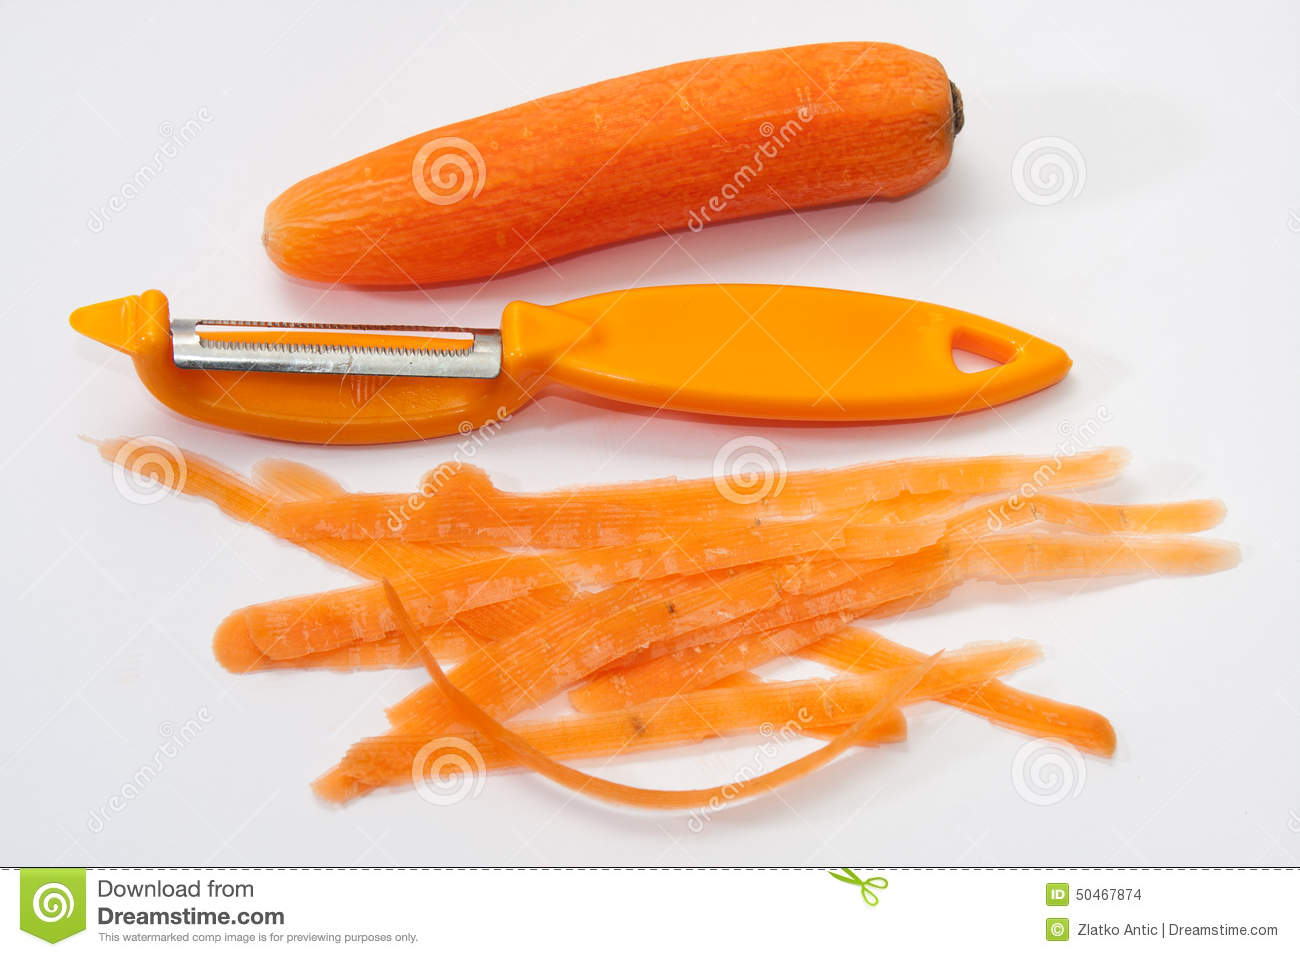 Fresh Carrots Peeled With A Knife For Peeling Stock Photo